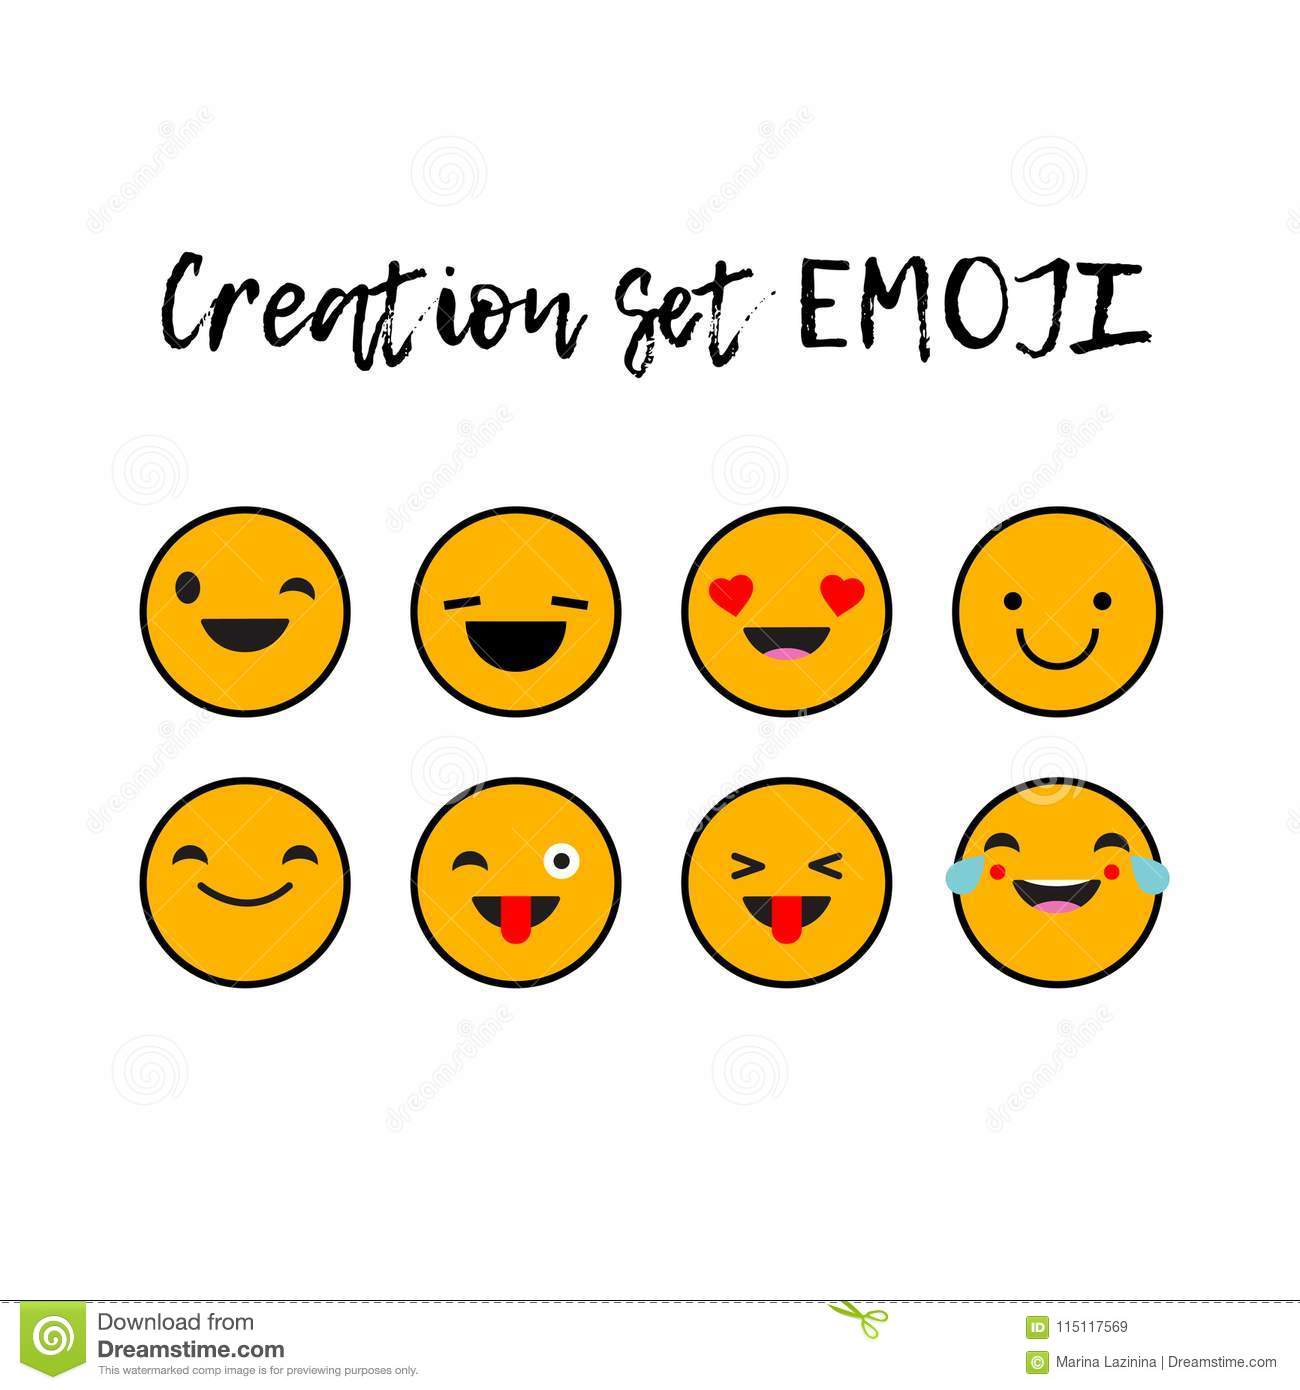 Various Lists of Emotions